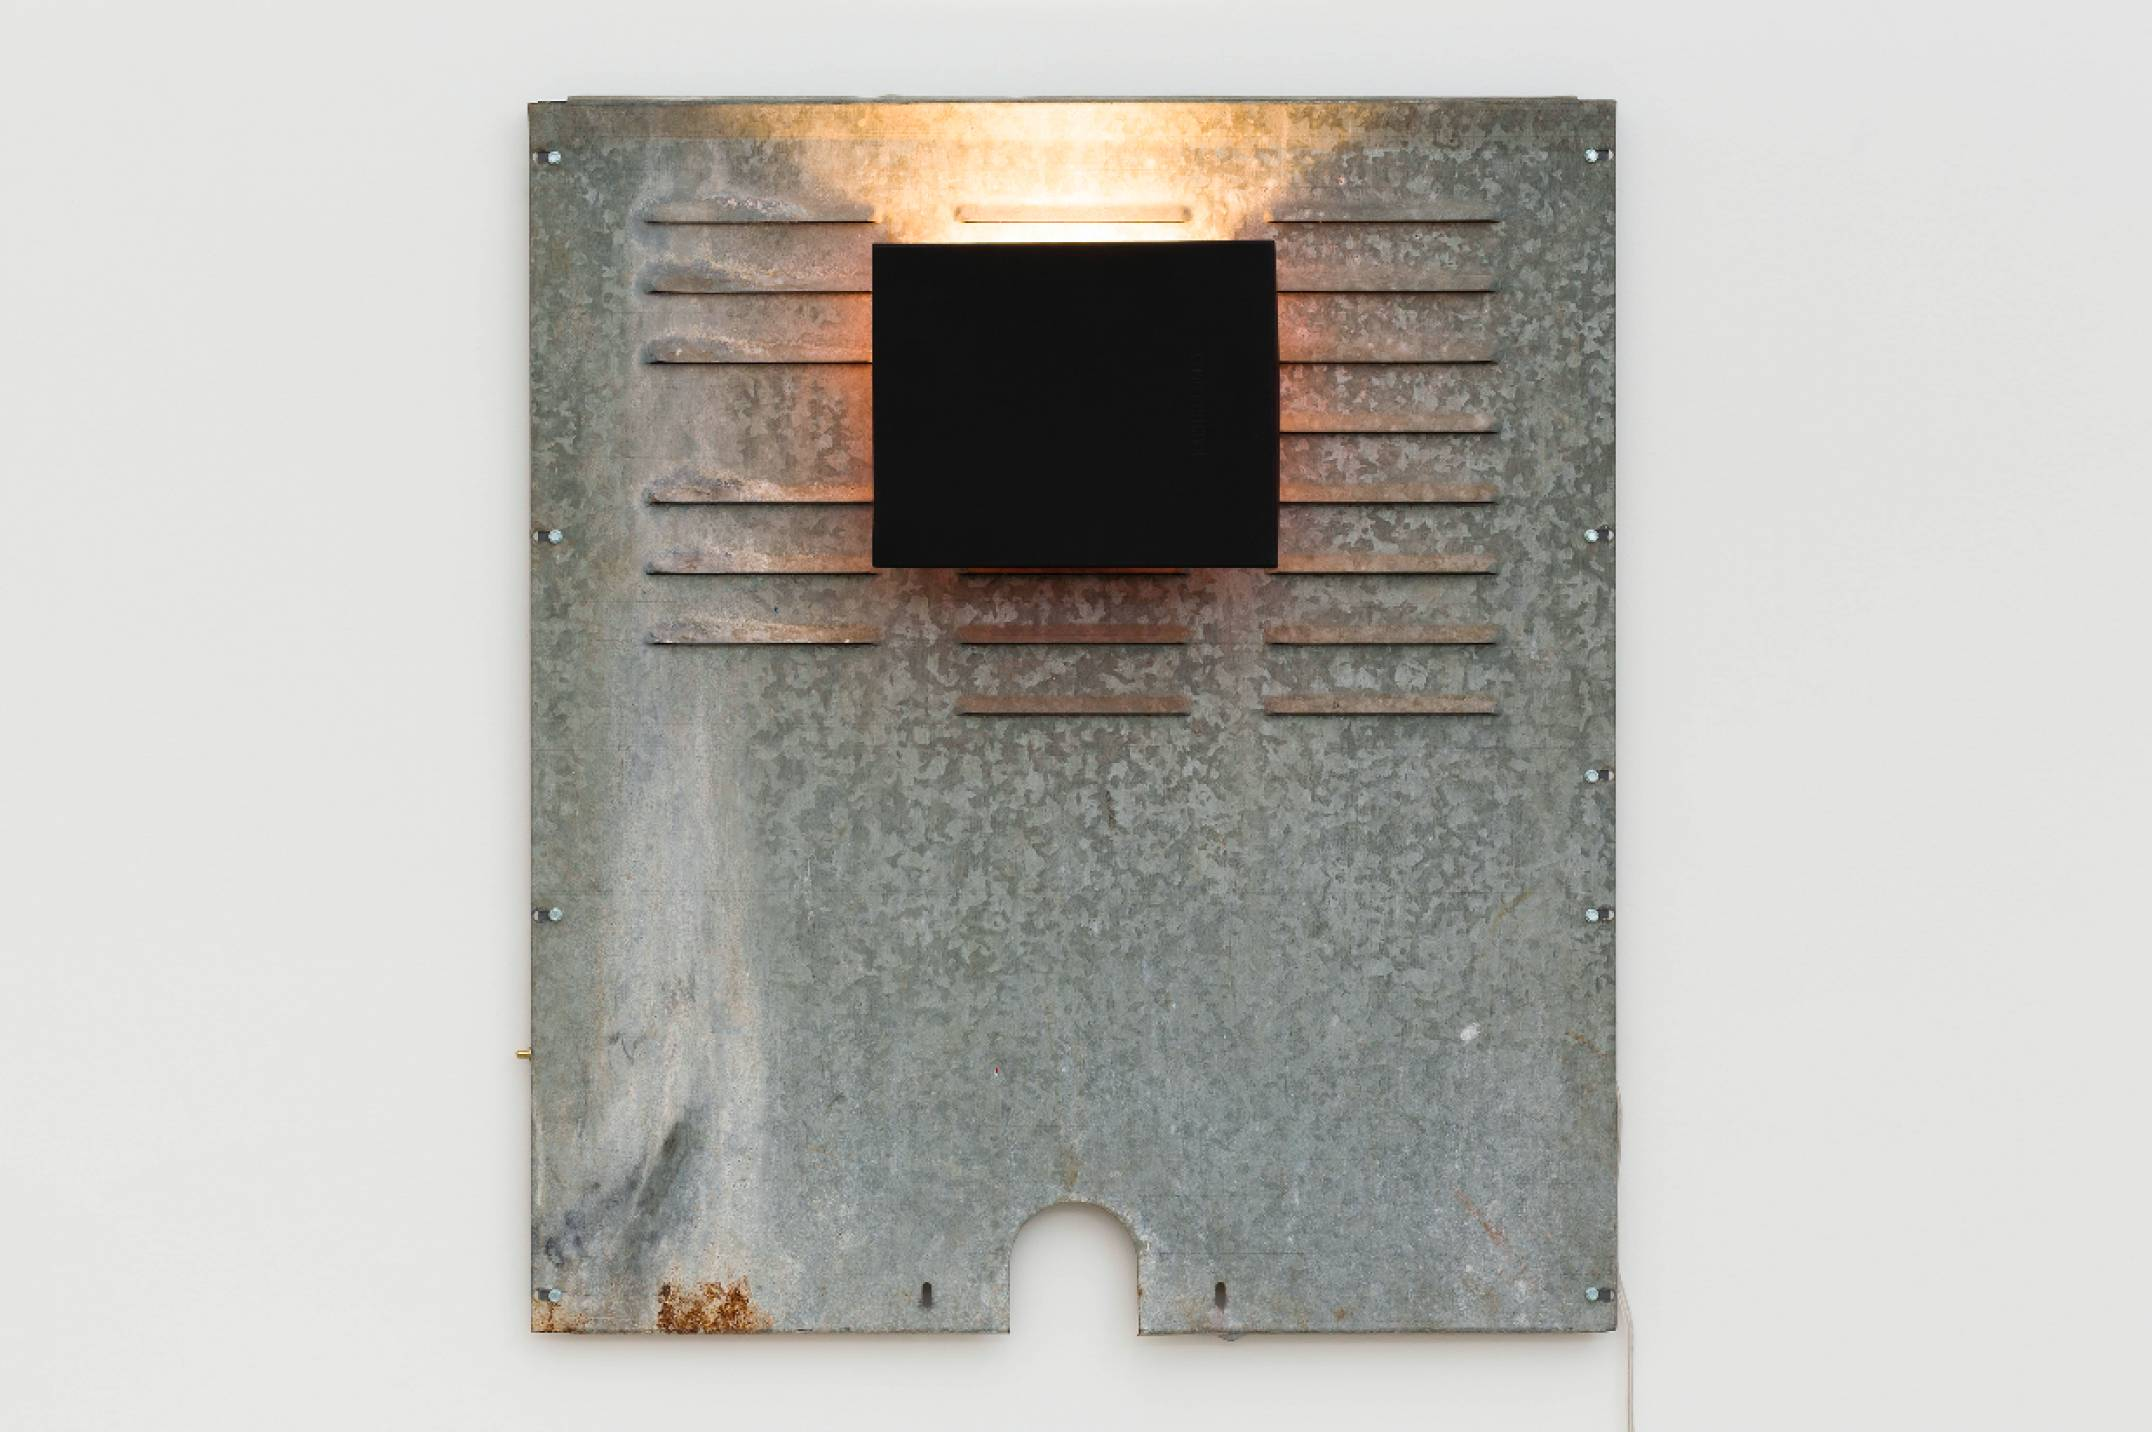 Aki Sasamoto, <em>Shoebox Wall Sconce (anonymous black)</em>, 2016, shoebox lid, backboard of a used laundry machine, wall sconce, wood, LED light bulb and push button switch, 94 × 71,1 × 15,6 cm - Mendes Wood DM